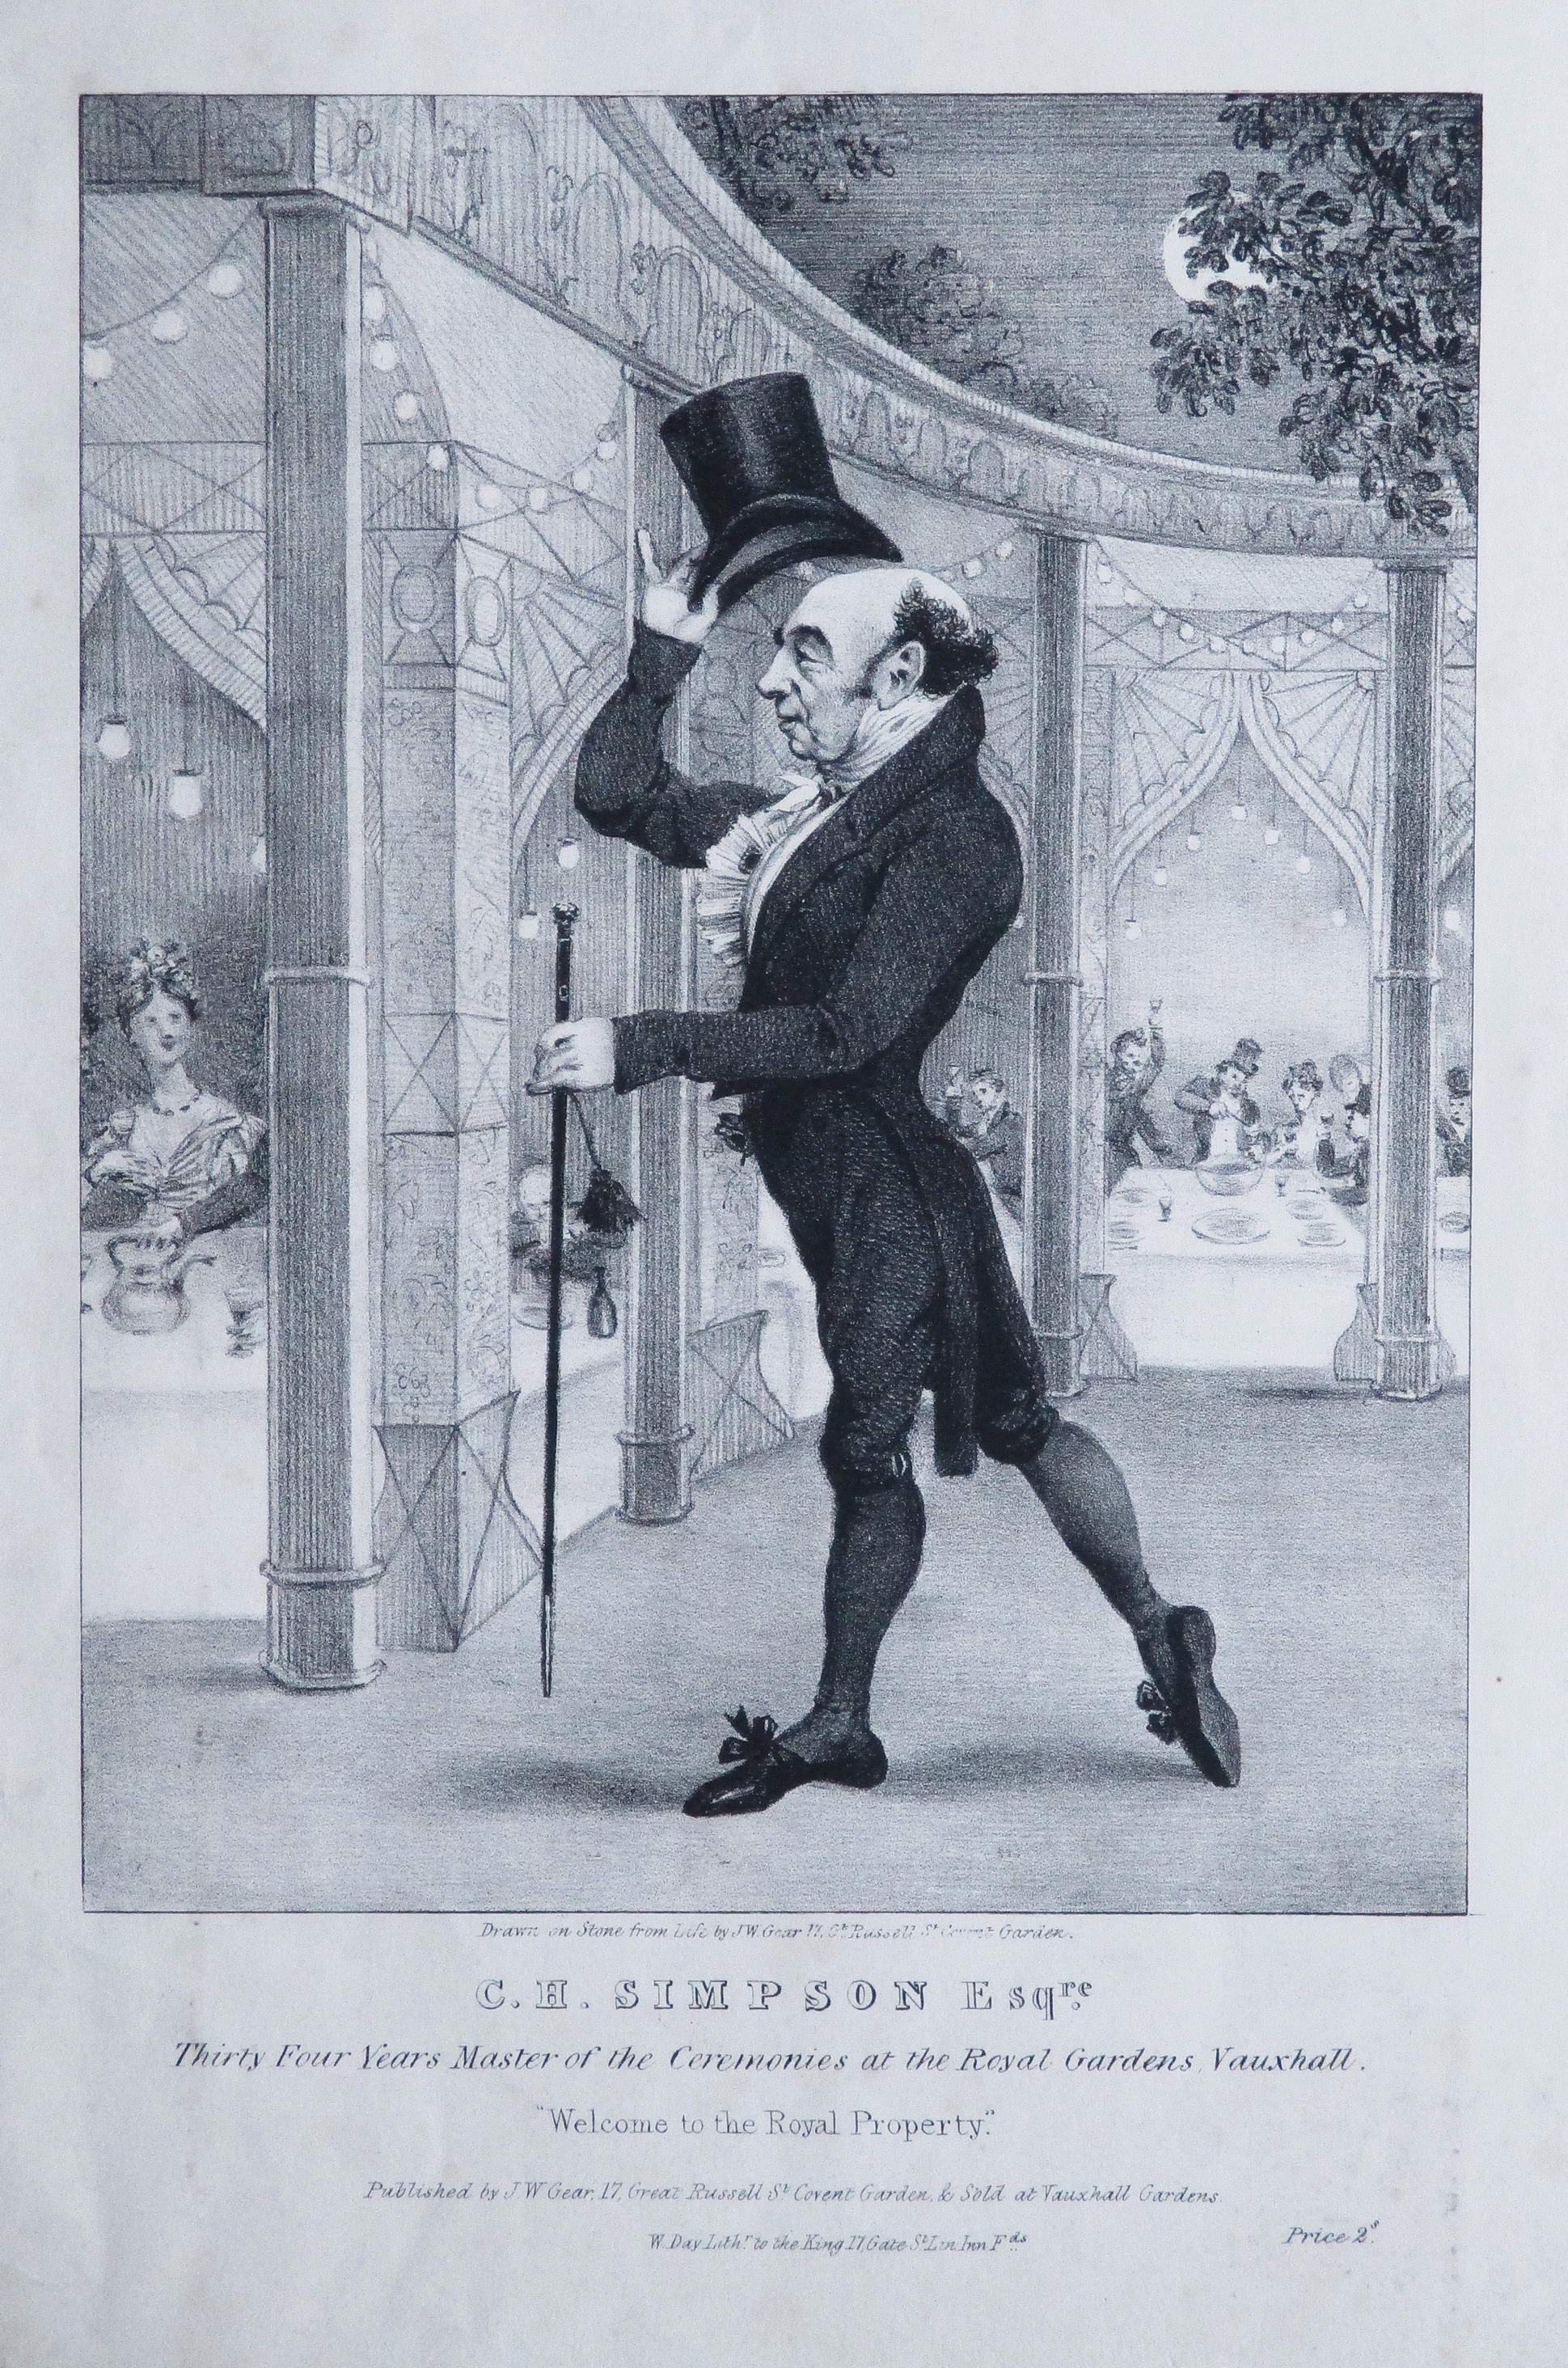 C. H. Simpson by W. Day (1831)